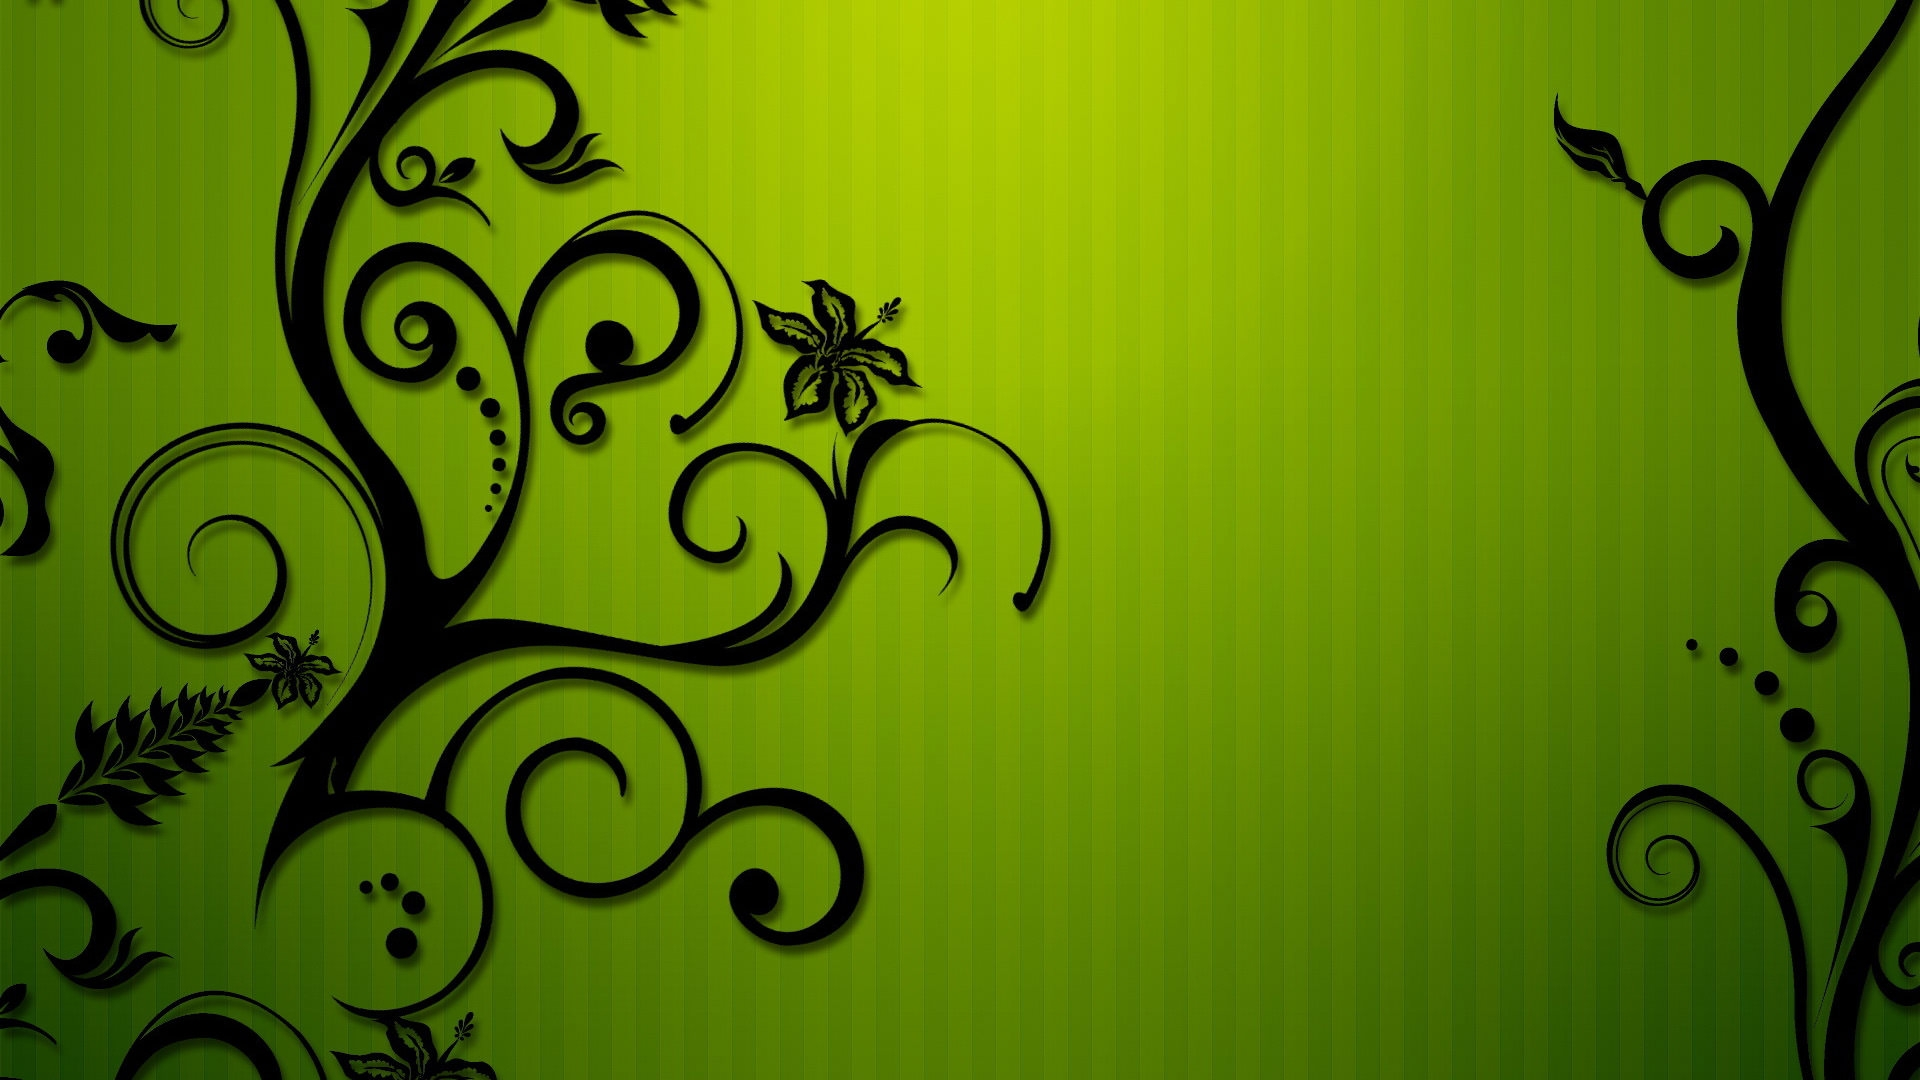 10 high res beautiful green floral wallpaper patterns - Lime green and white wallpaper ...